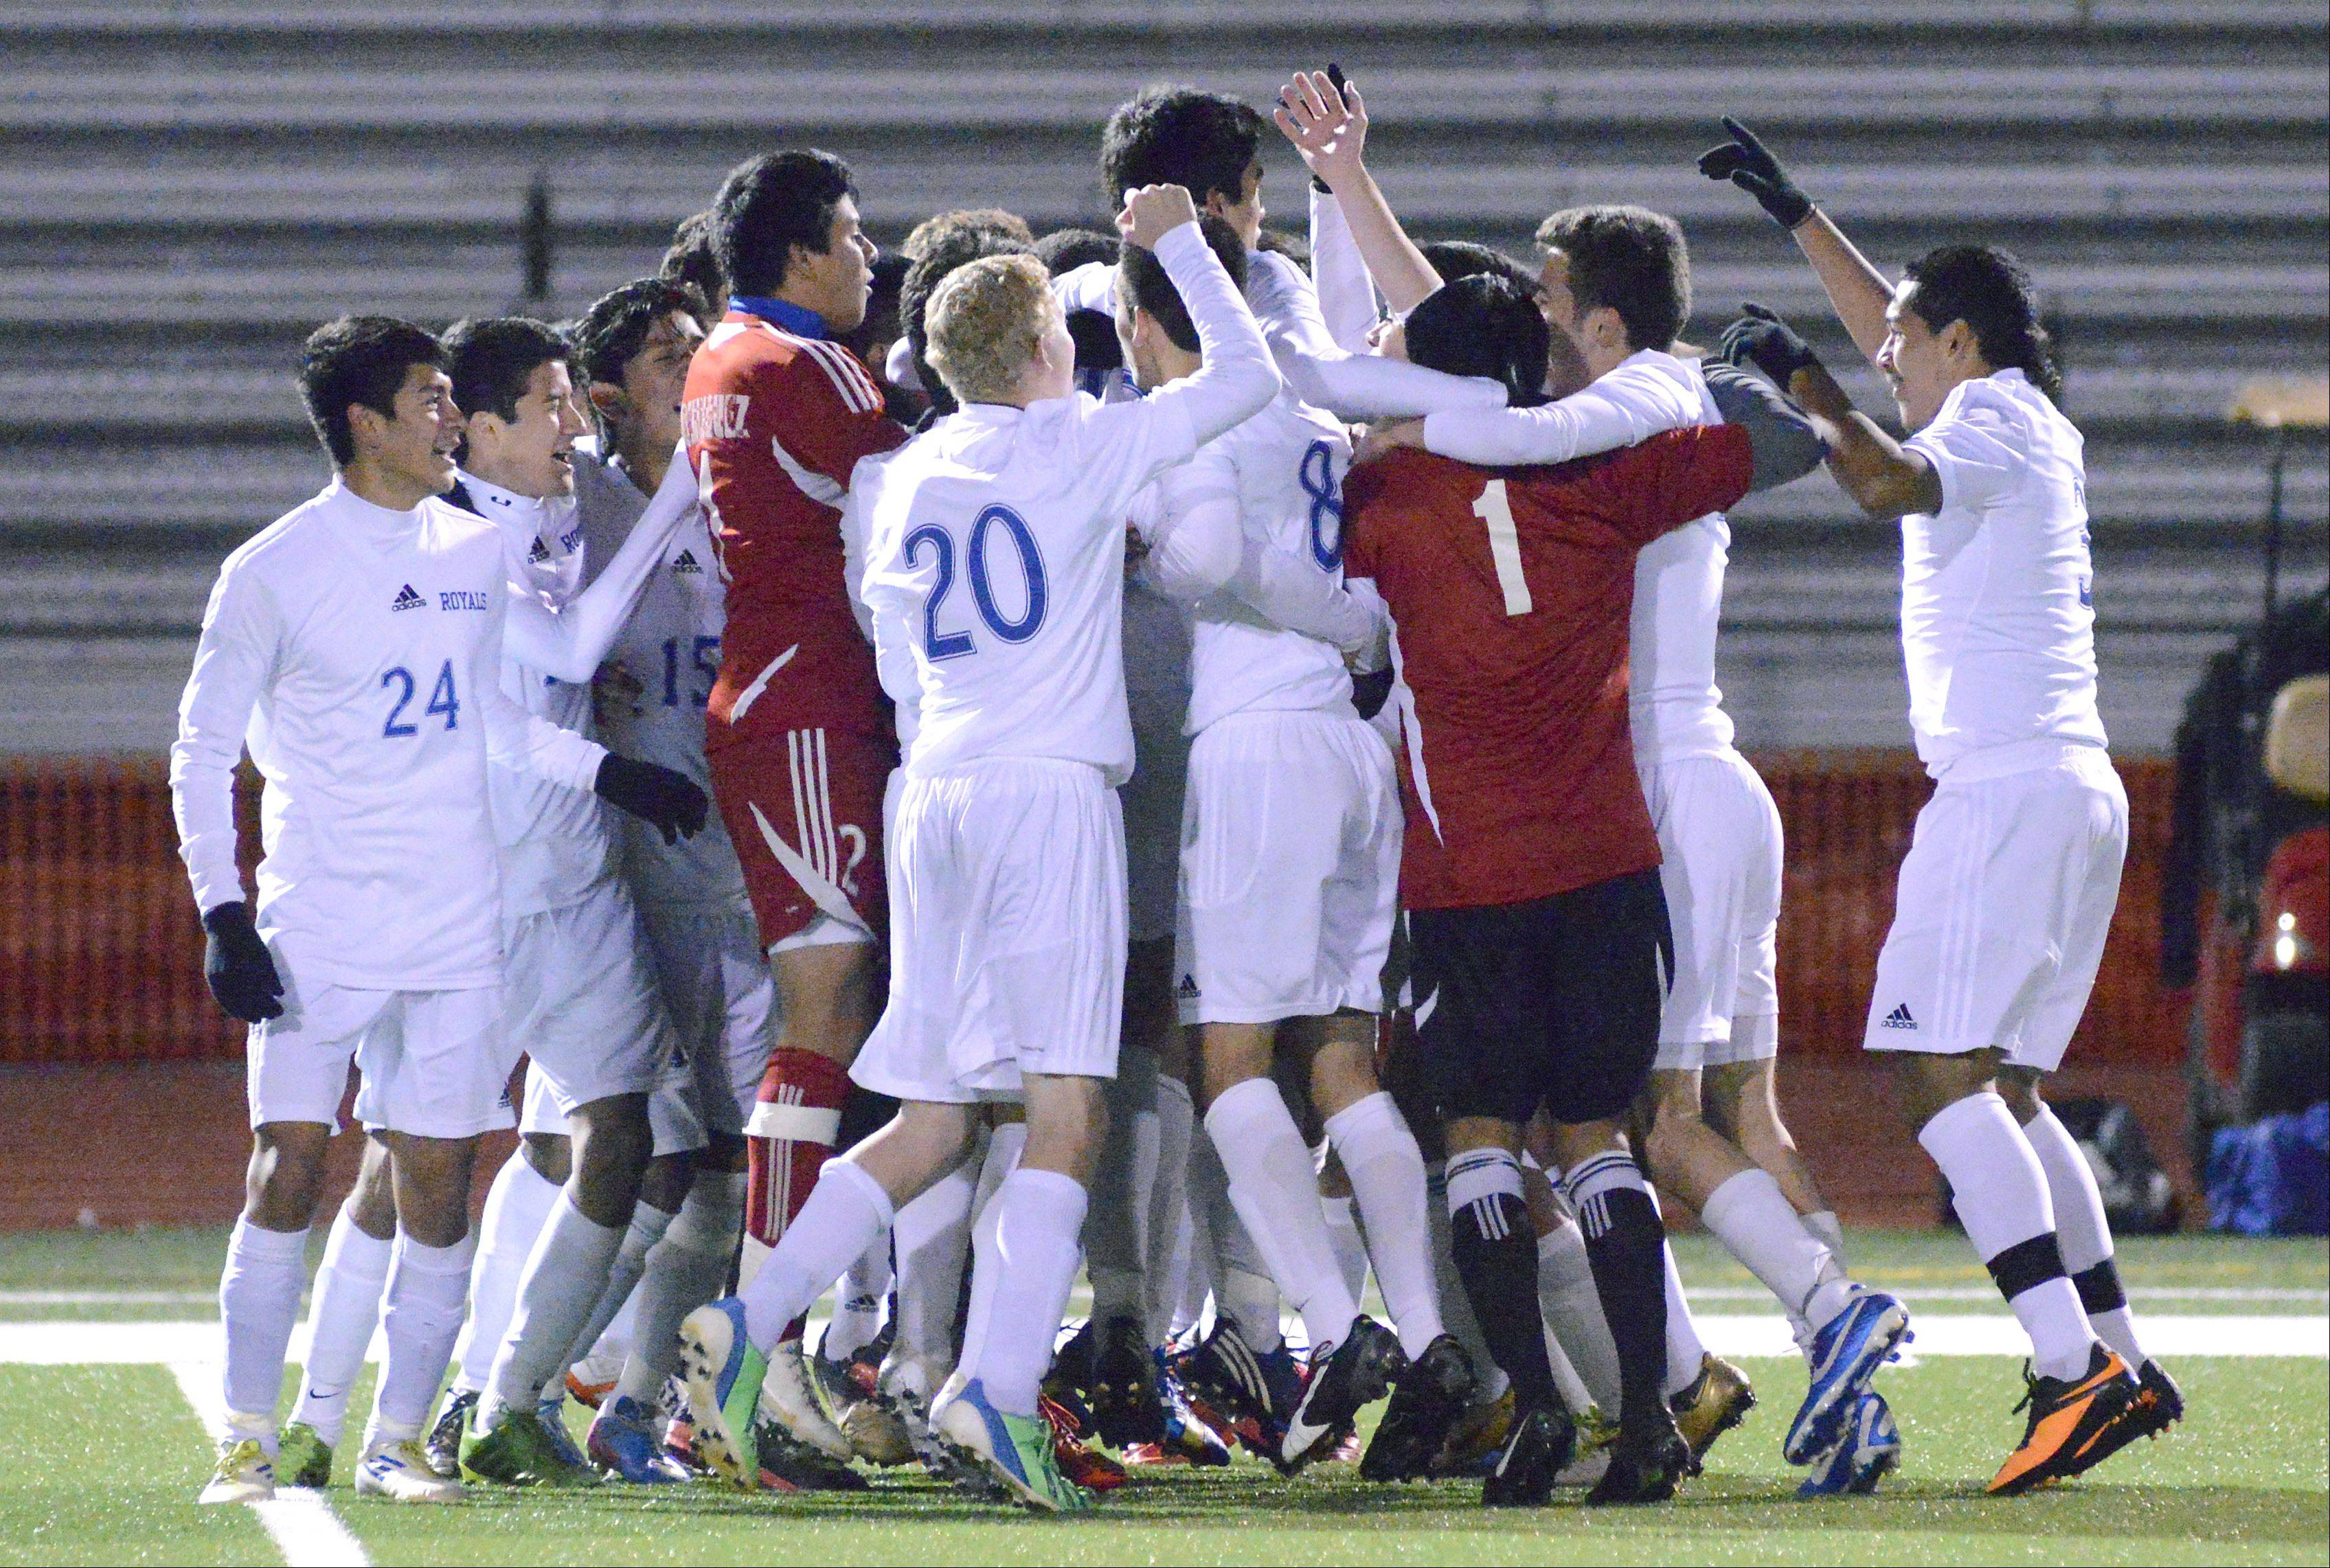 Larkin celebrates its Class 3A sectional championship win over McHenry at Huntley on Saturday.